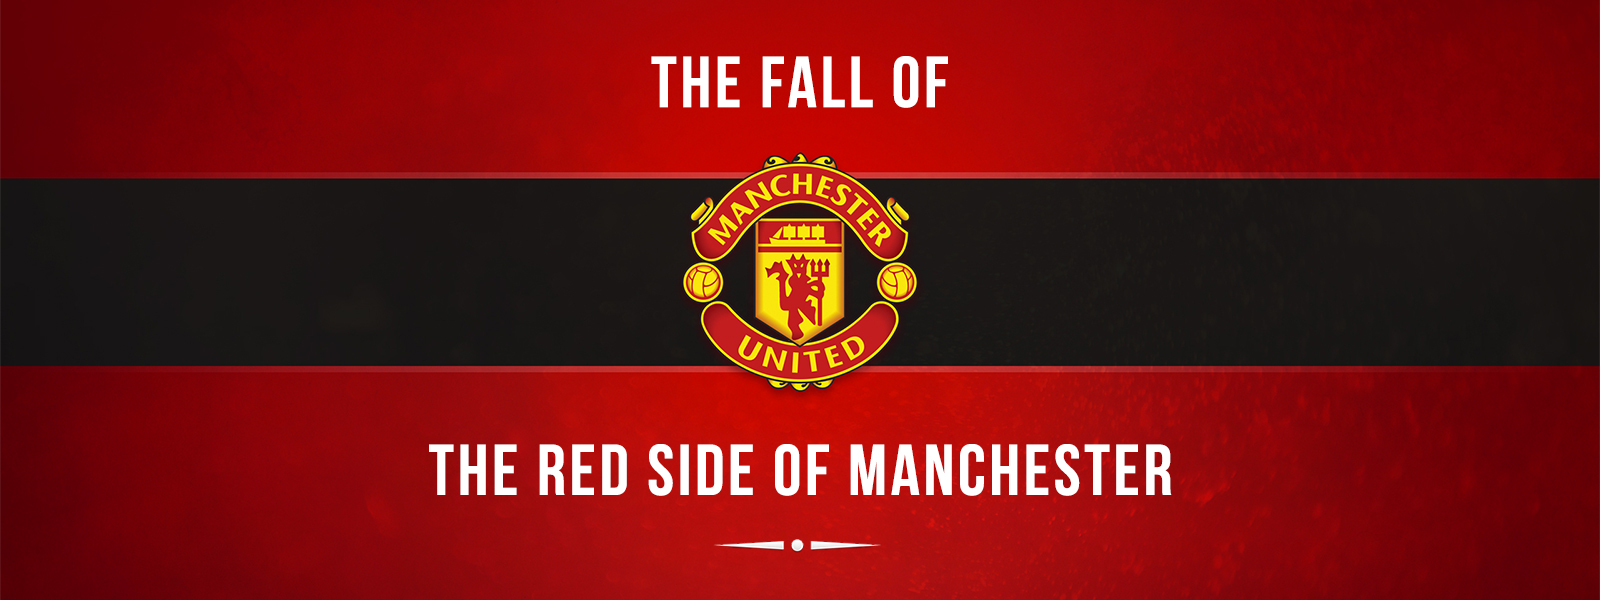 The Fall Of The Red Side Of Manchester United